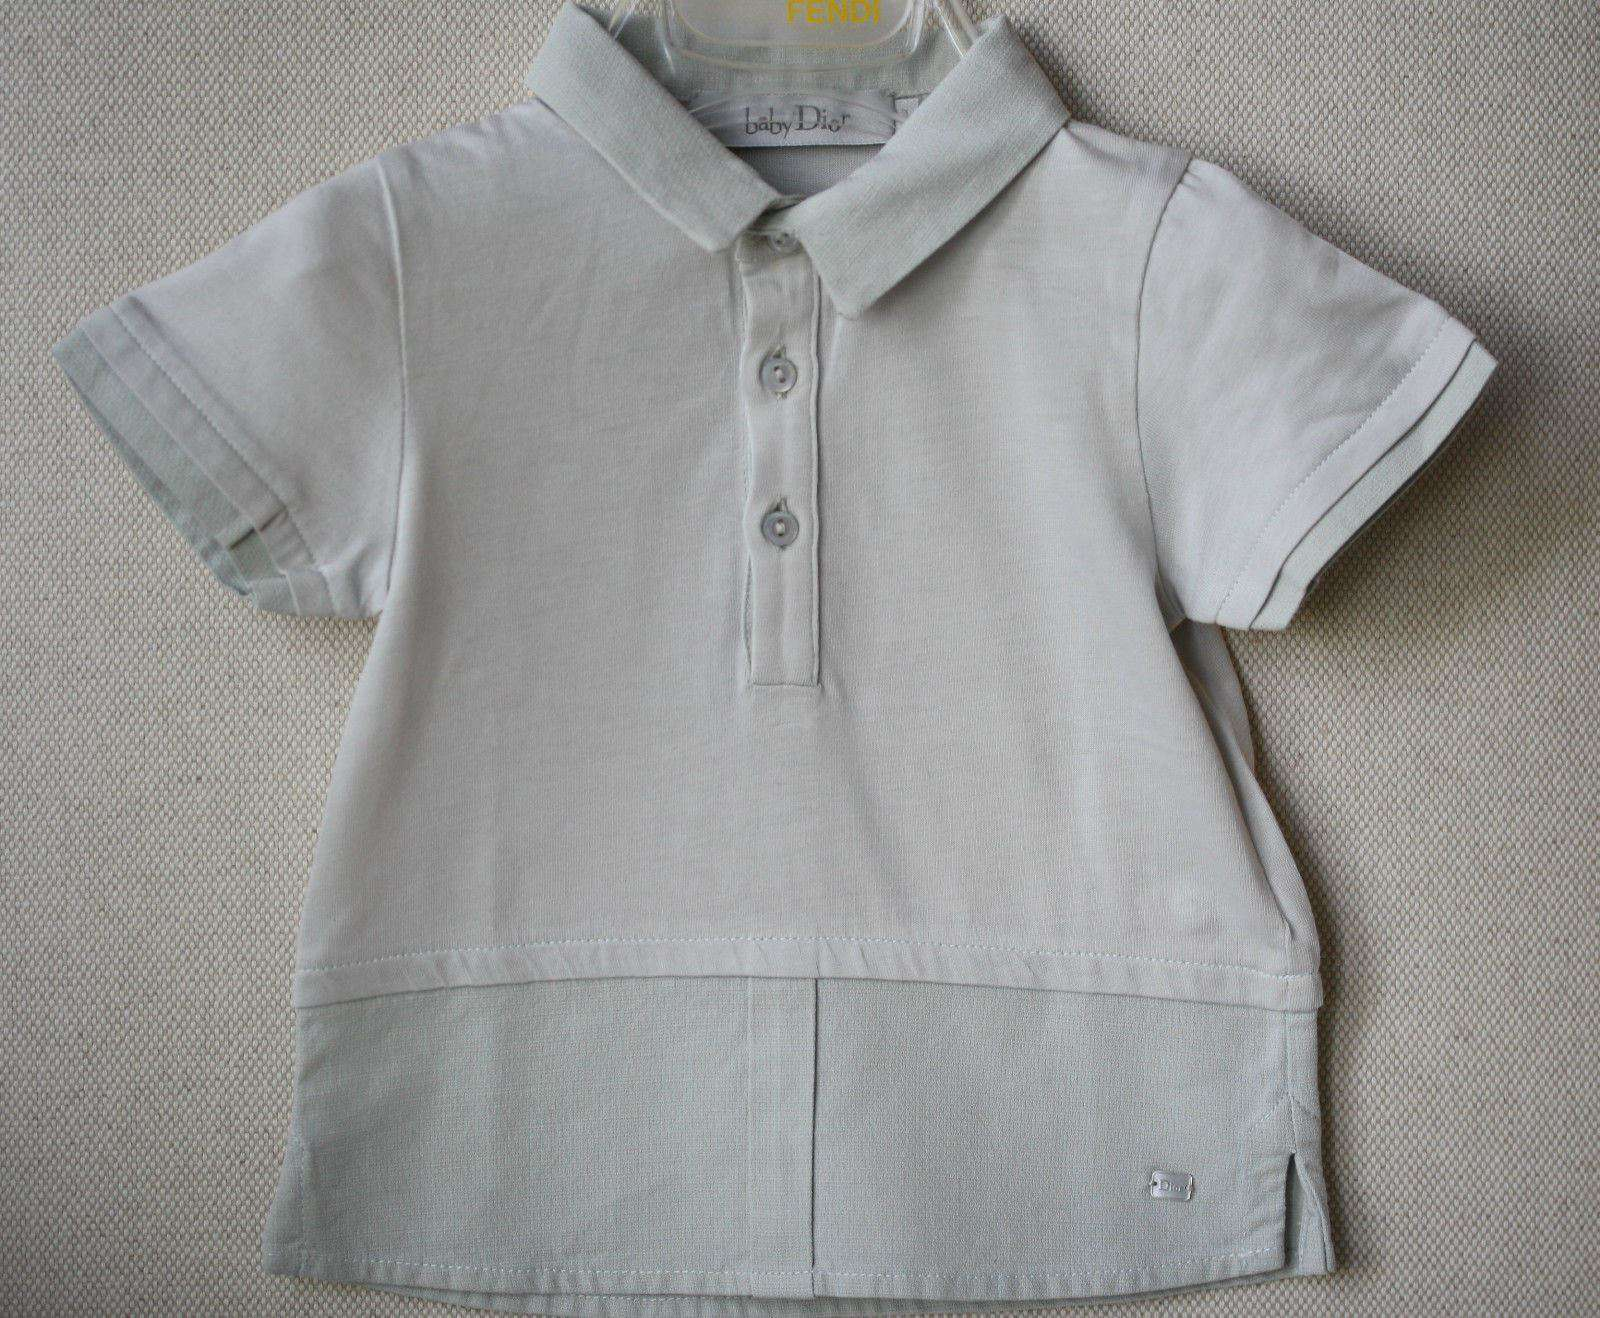 BABY DIOR COTTON AND LINEN SHIRT AND TROUSERS OUTFIT 3 MONTHS